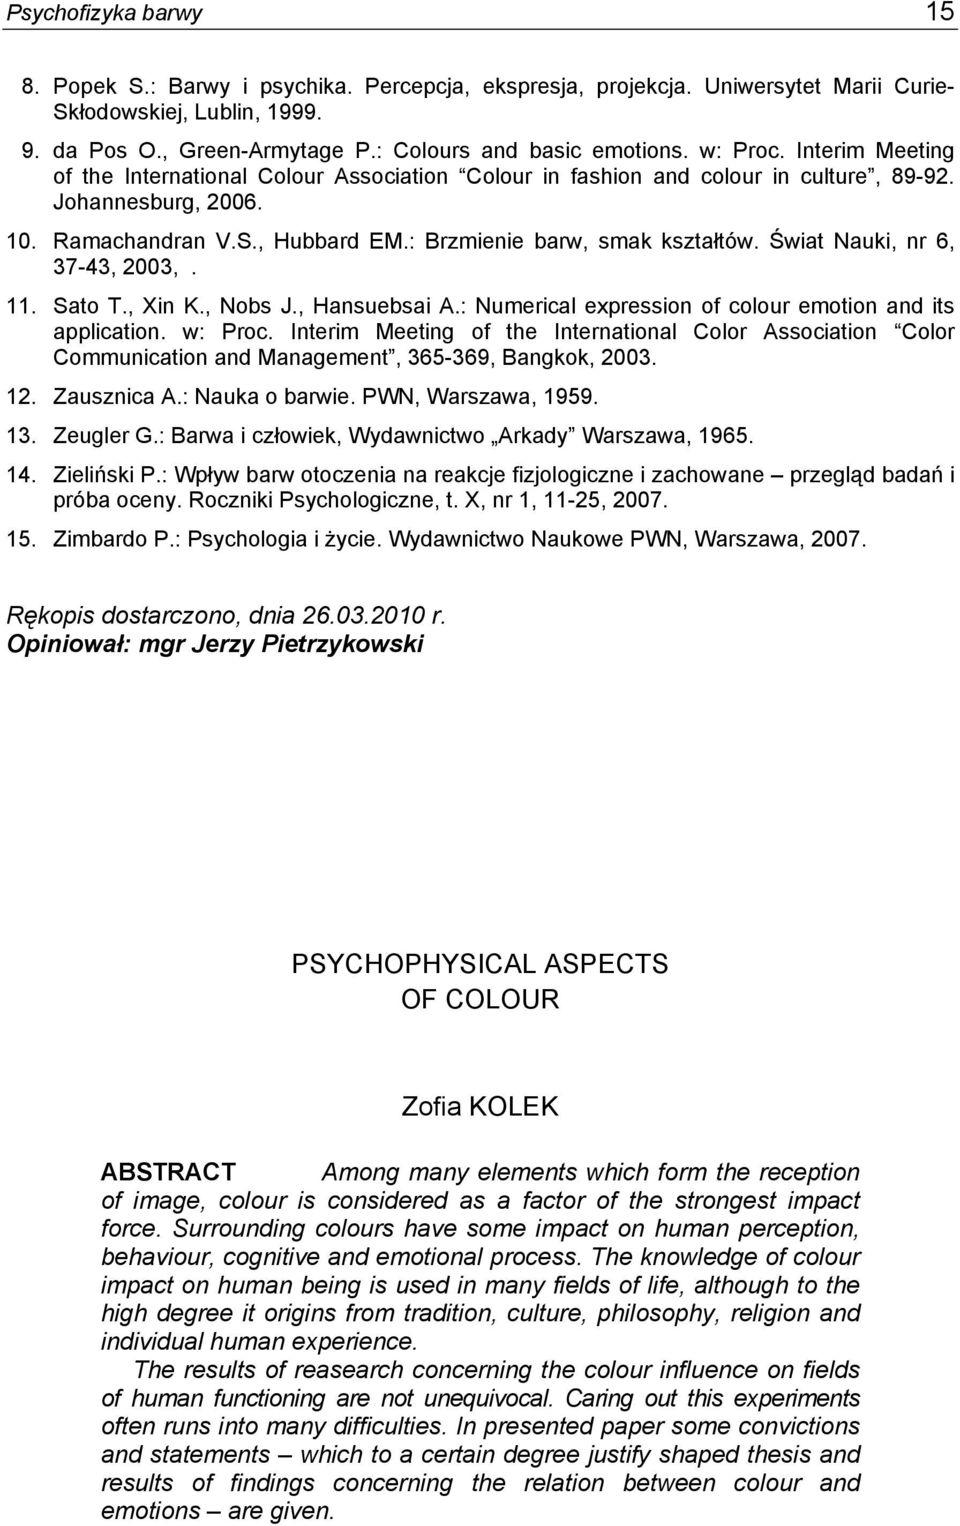 Świat Nauki, nr 6, 37-43, 2003,. 11. Sato T., Xin K., Nobs J., Hansuebsai A.: Numerical expression of colour emotion and its application. w: Proc.